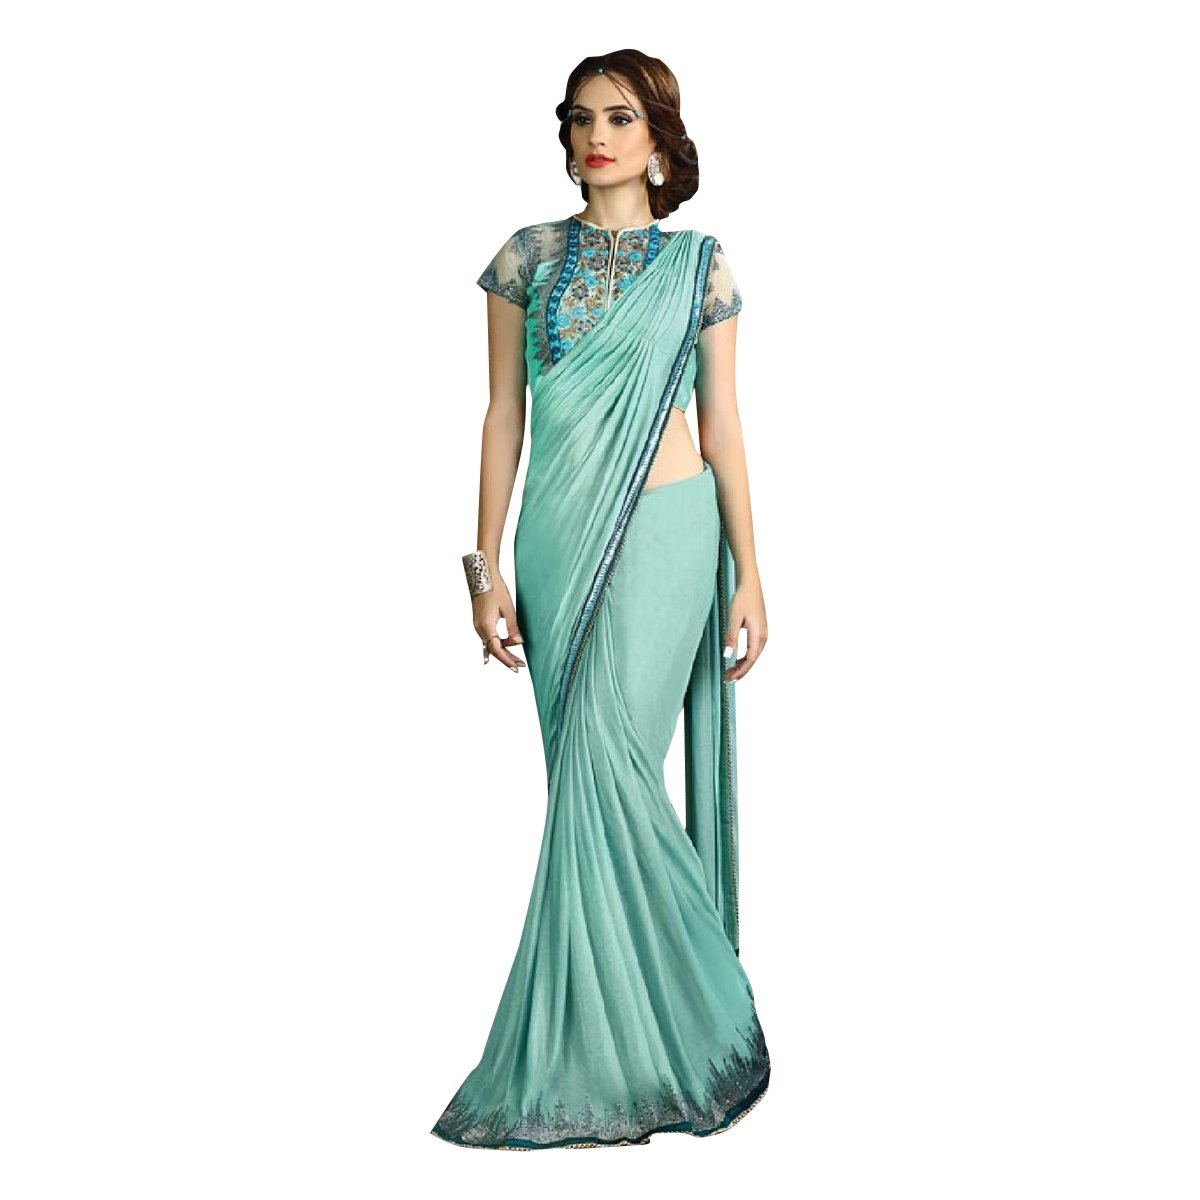 Designer RichLook Party Wear Indian Saree Wedding Bridal Suit Lehenga Women Dress 515